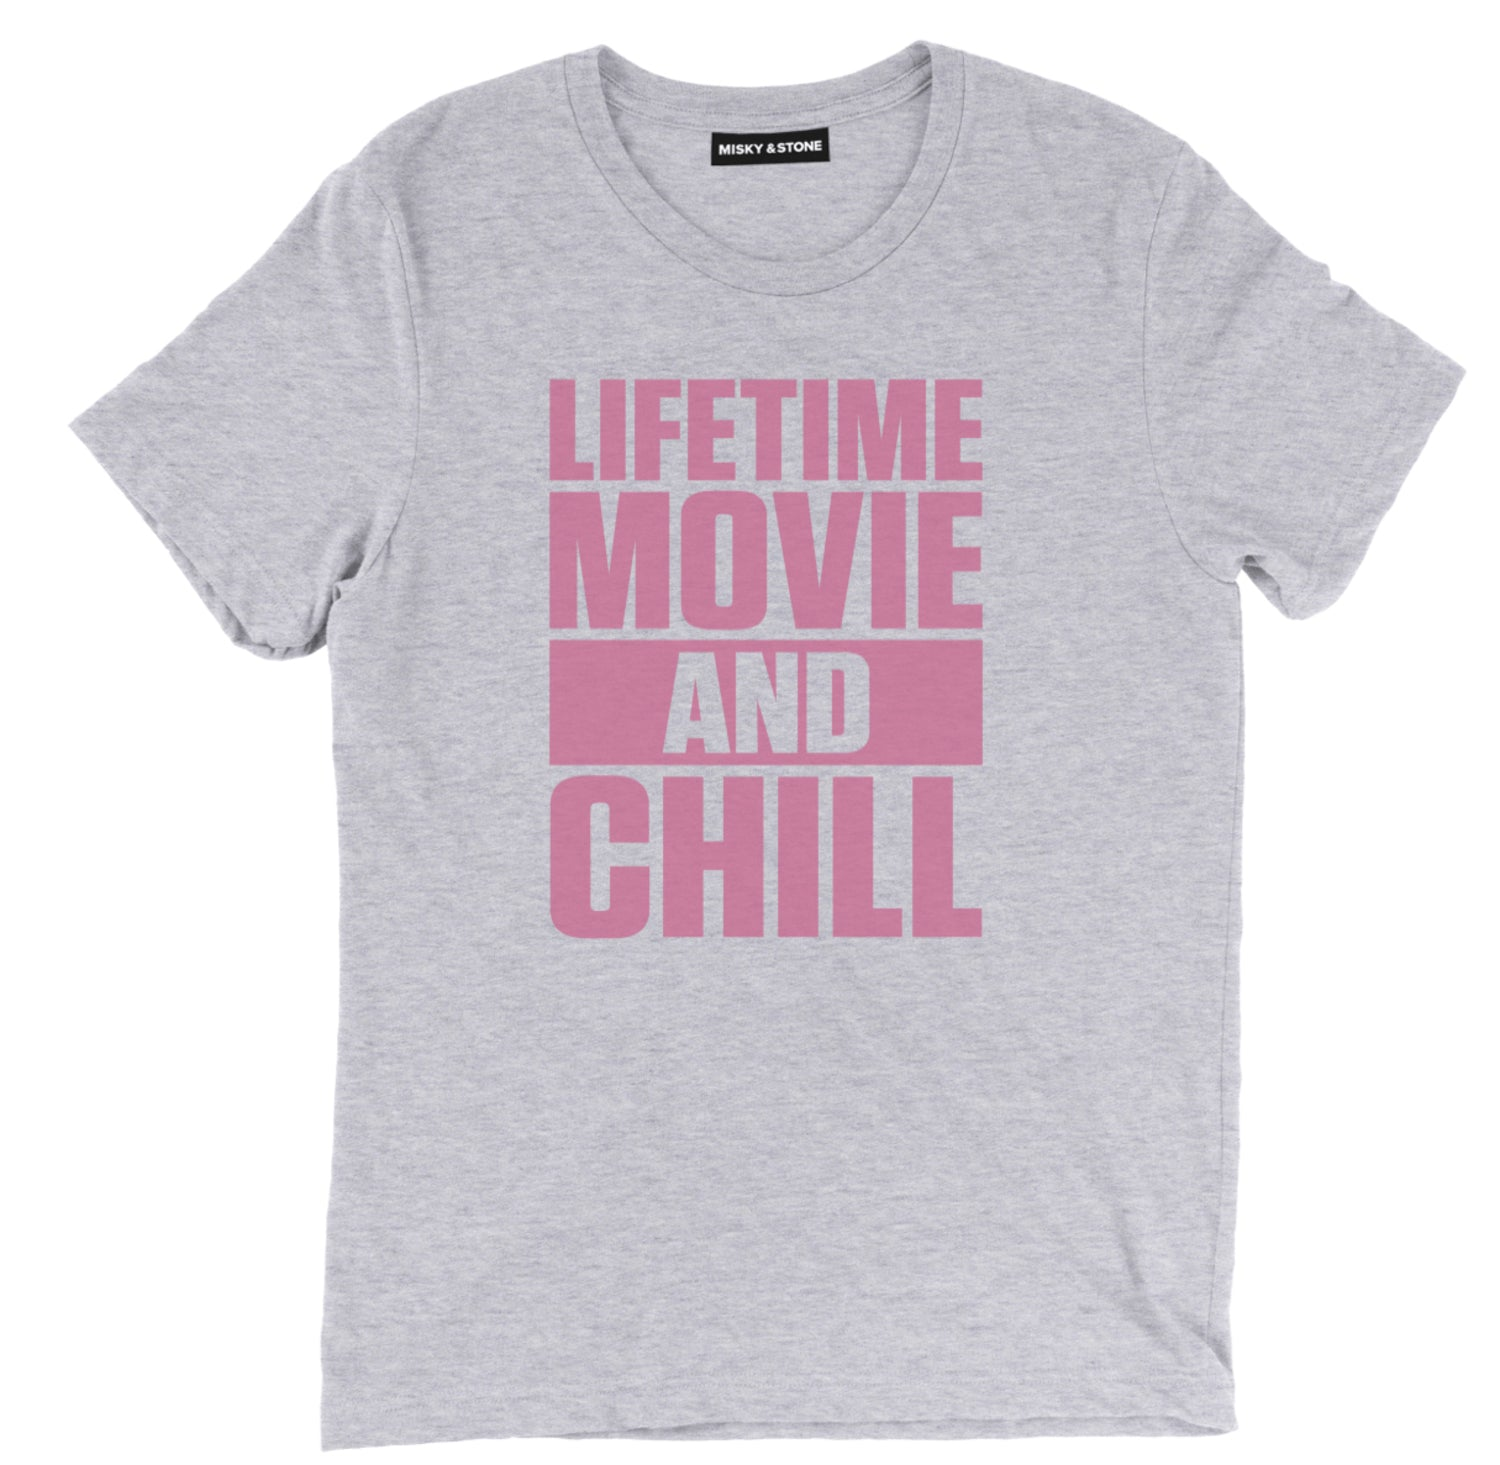 Lifetime Movie And Chill Tee